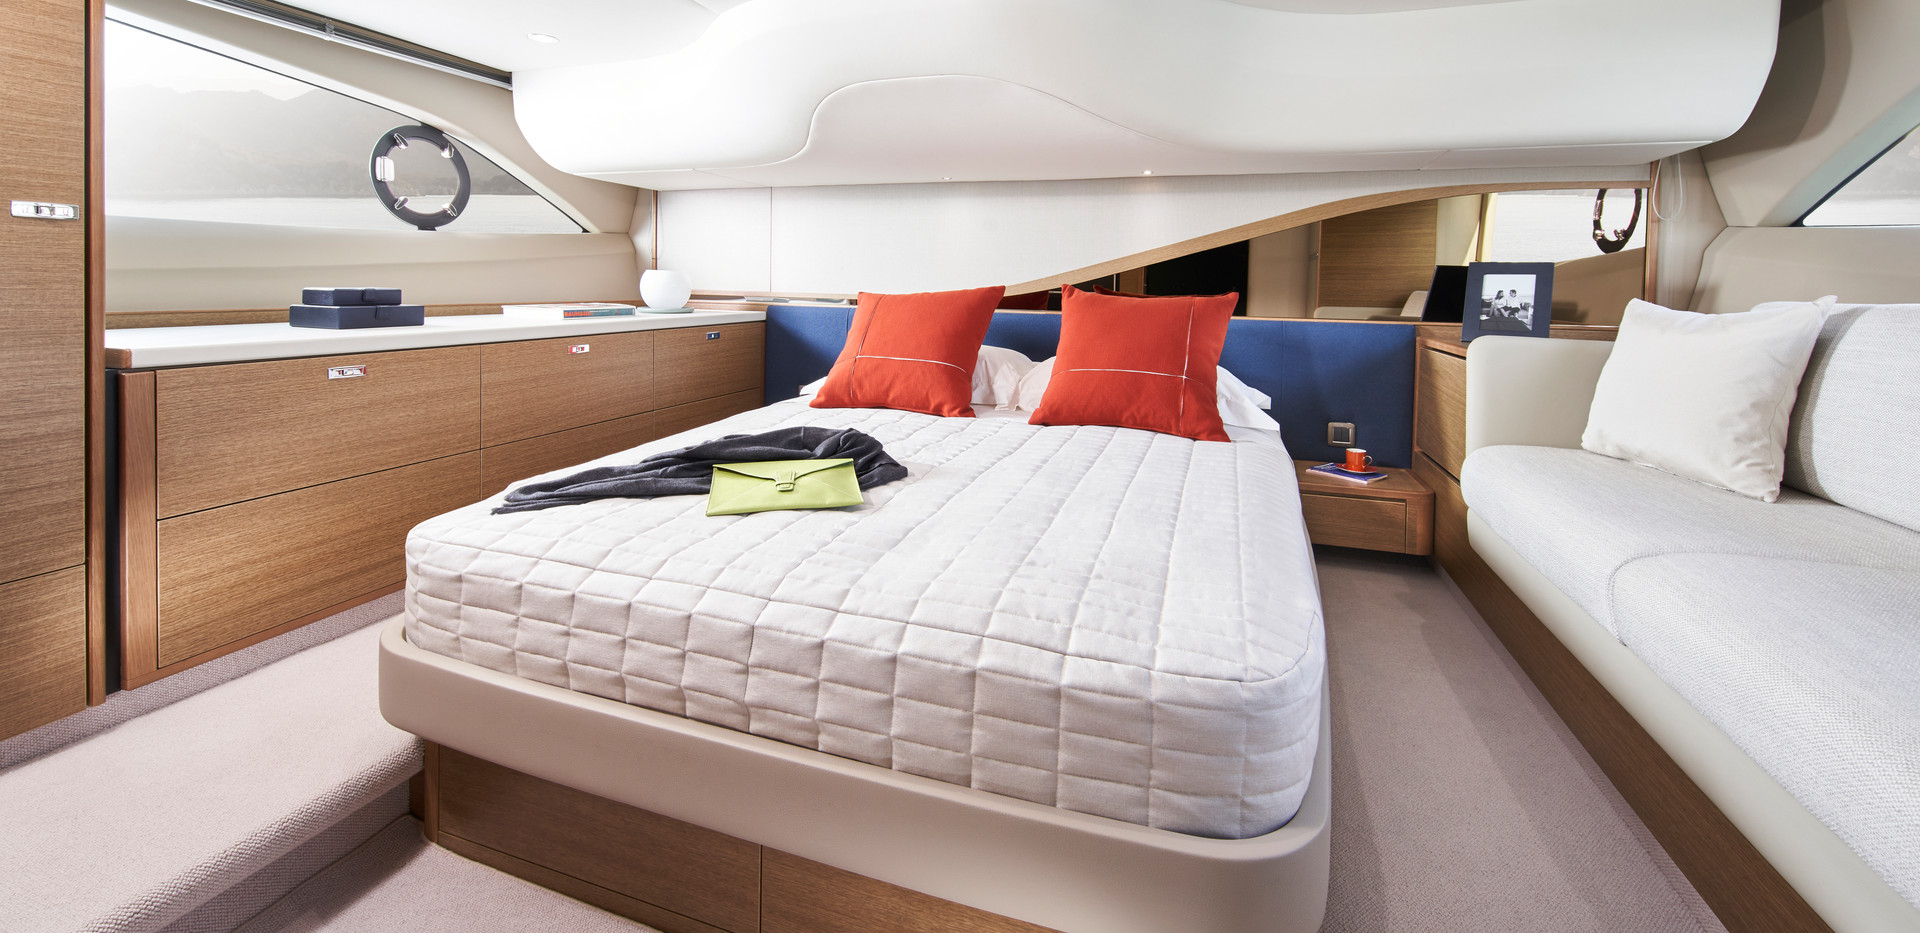 f45-interior-owners-stateroom-rovere-oak